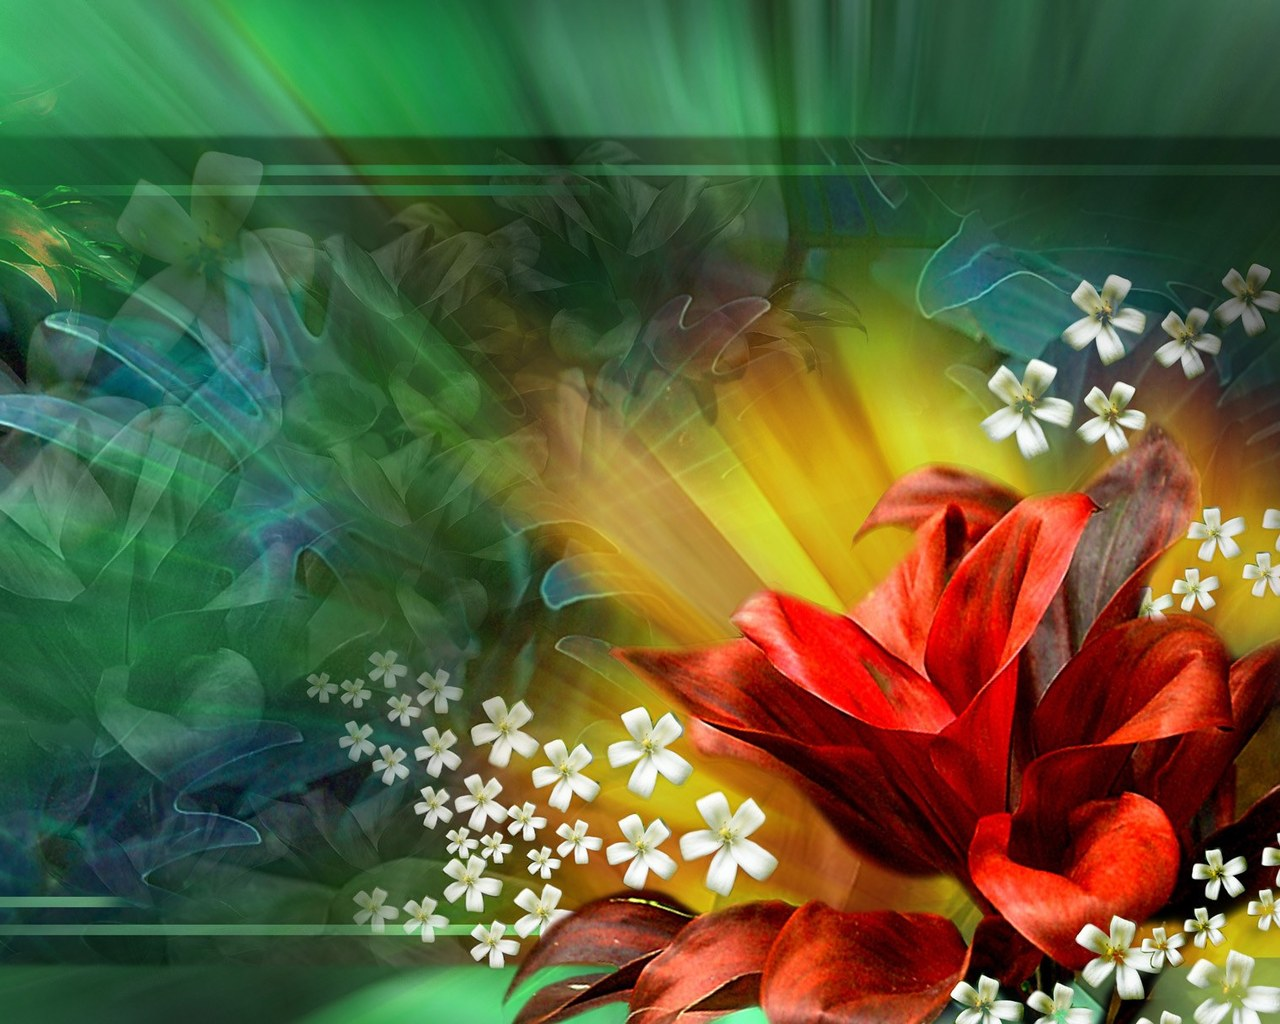 Windows7 Wallpapers And Themes WELCOME RUYIR